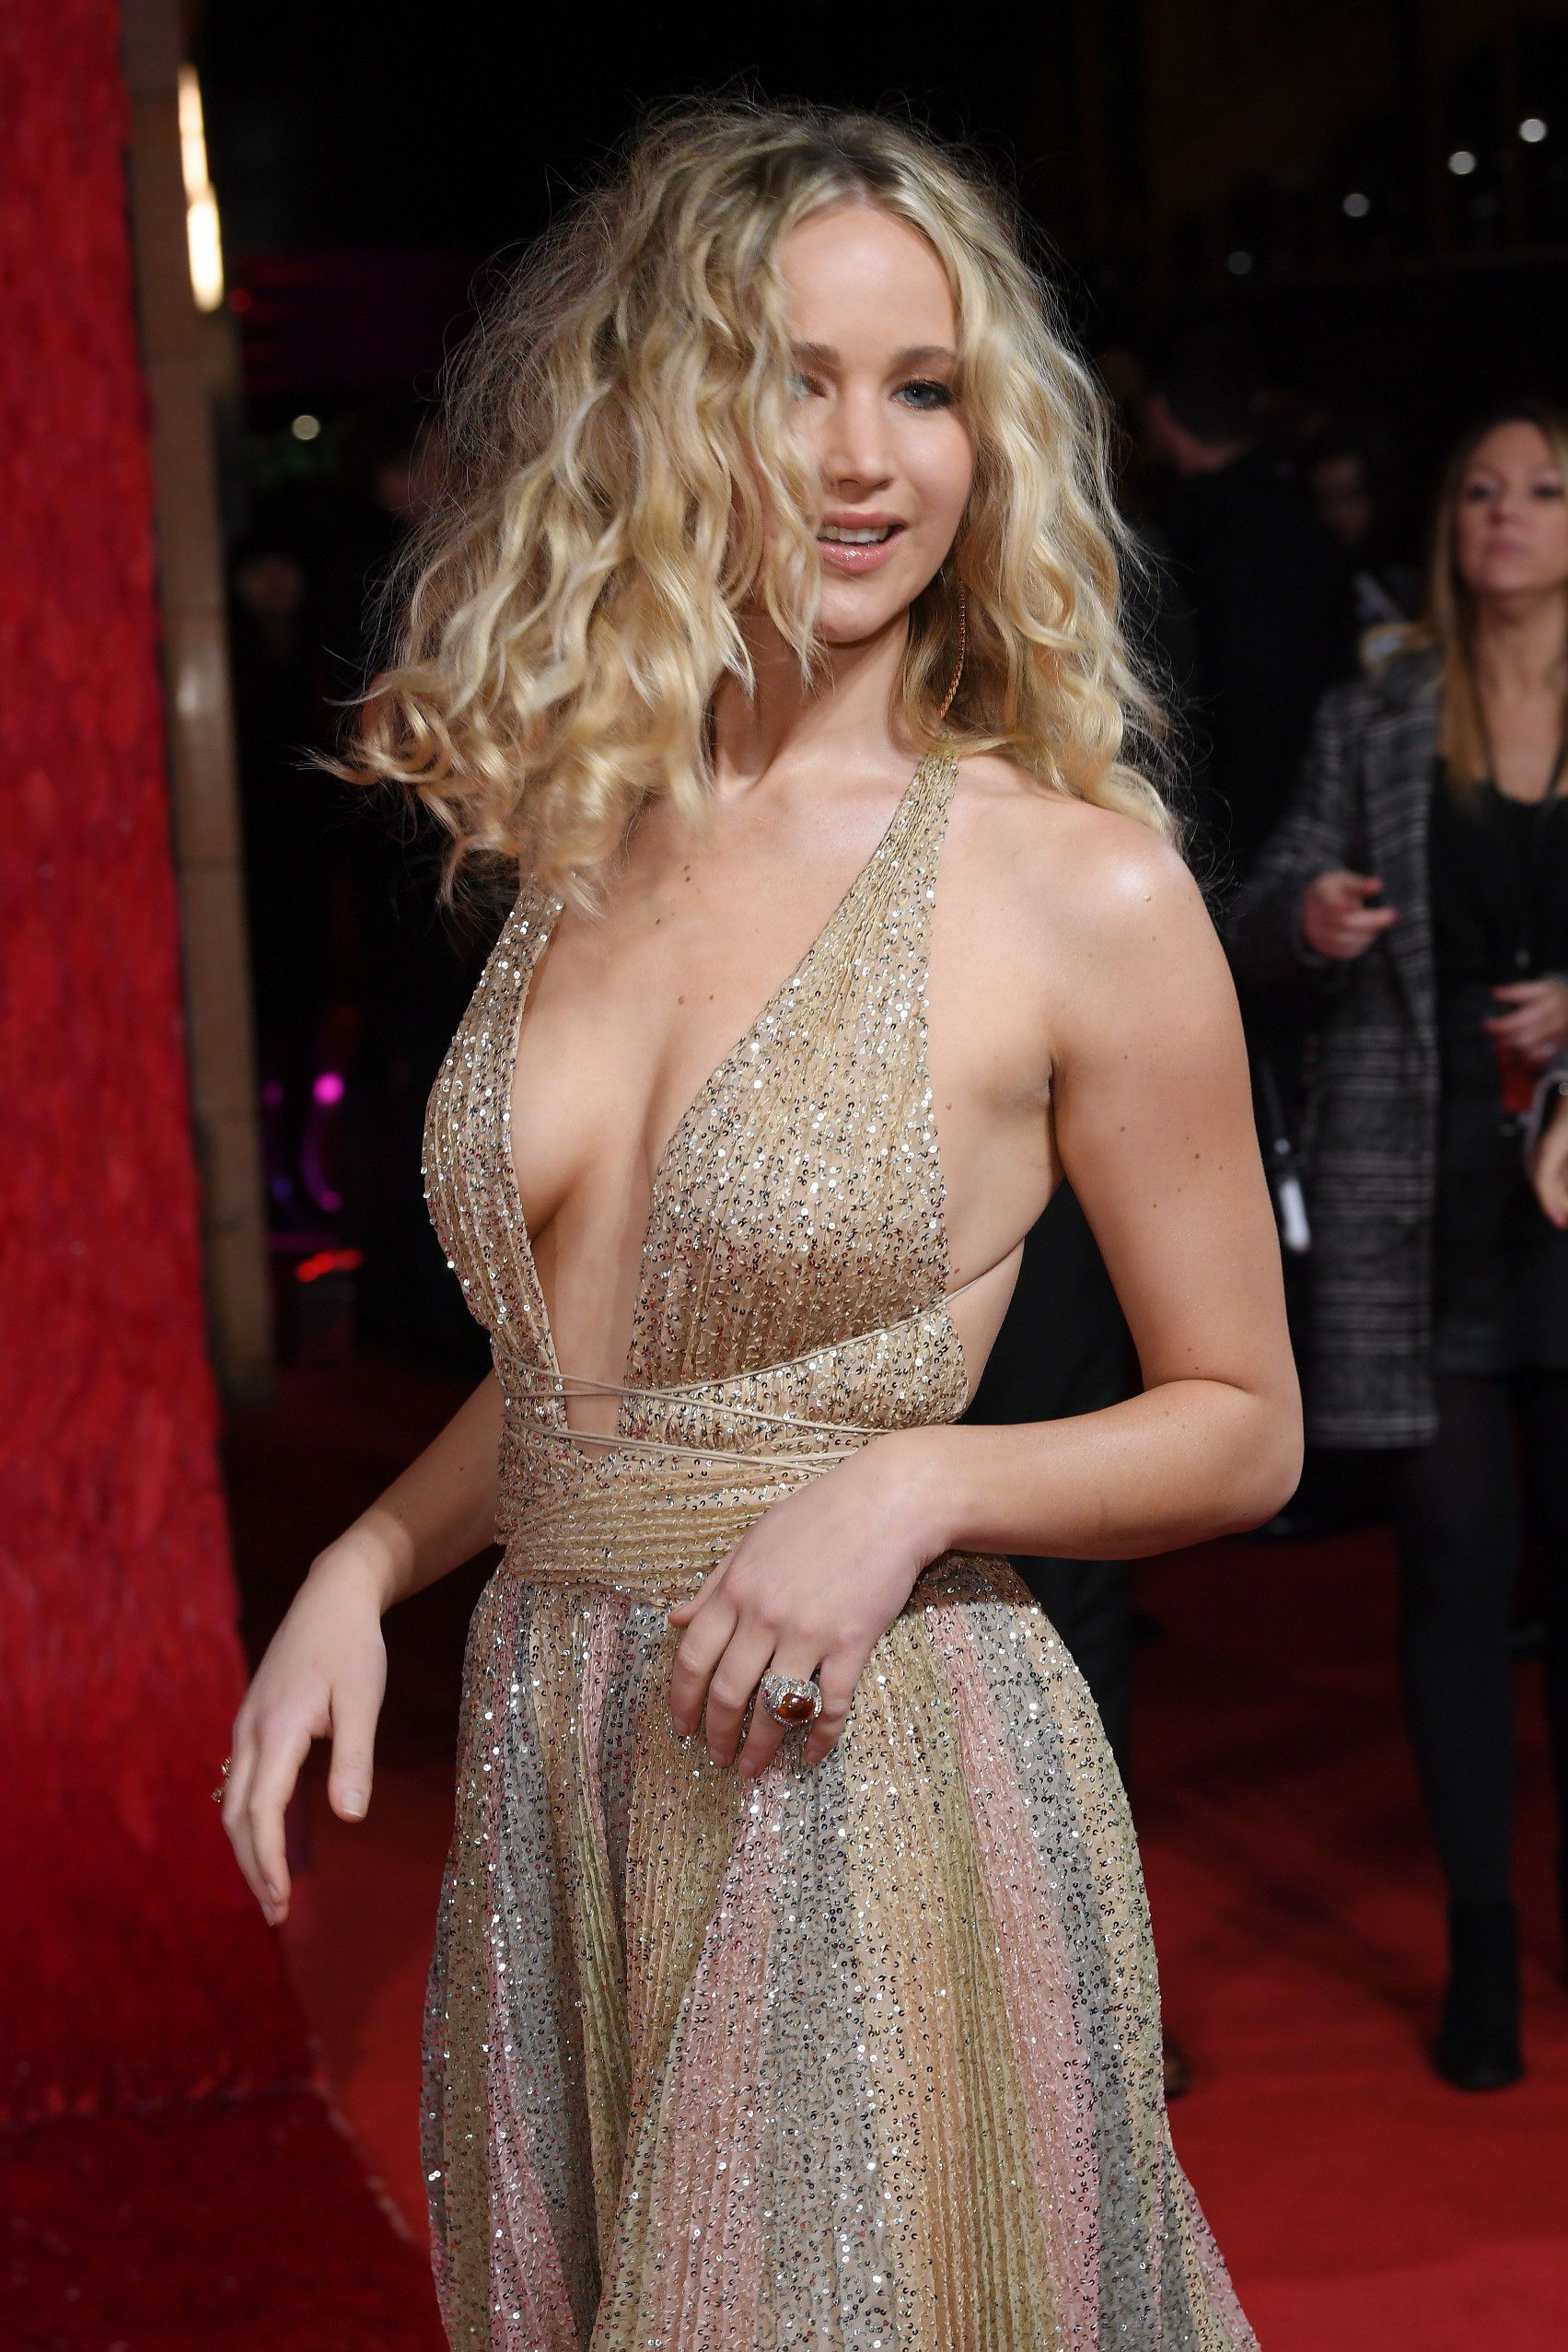 jennifer-lawrence-cleavage-at-red-sparrow-premiere-in-london-5517